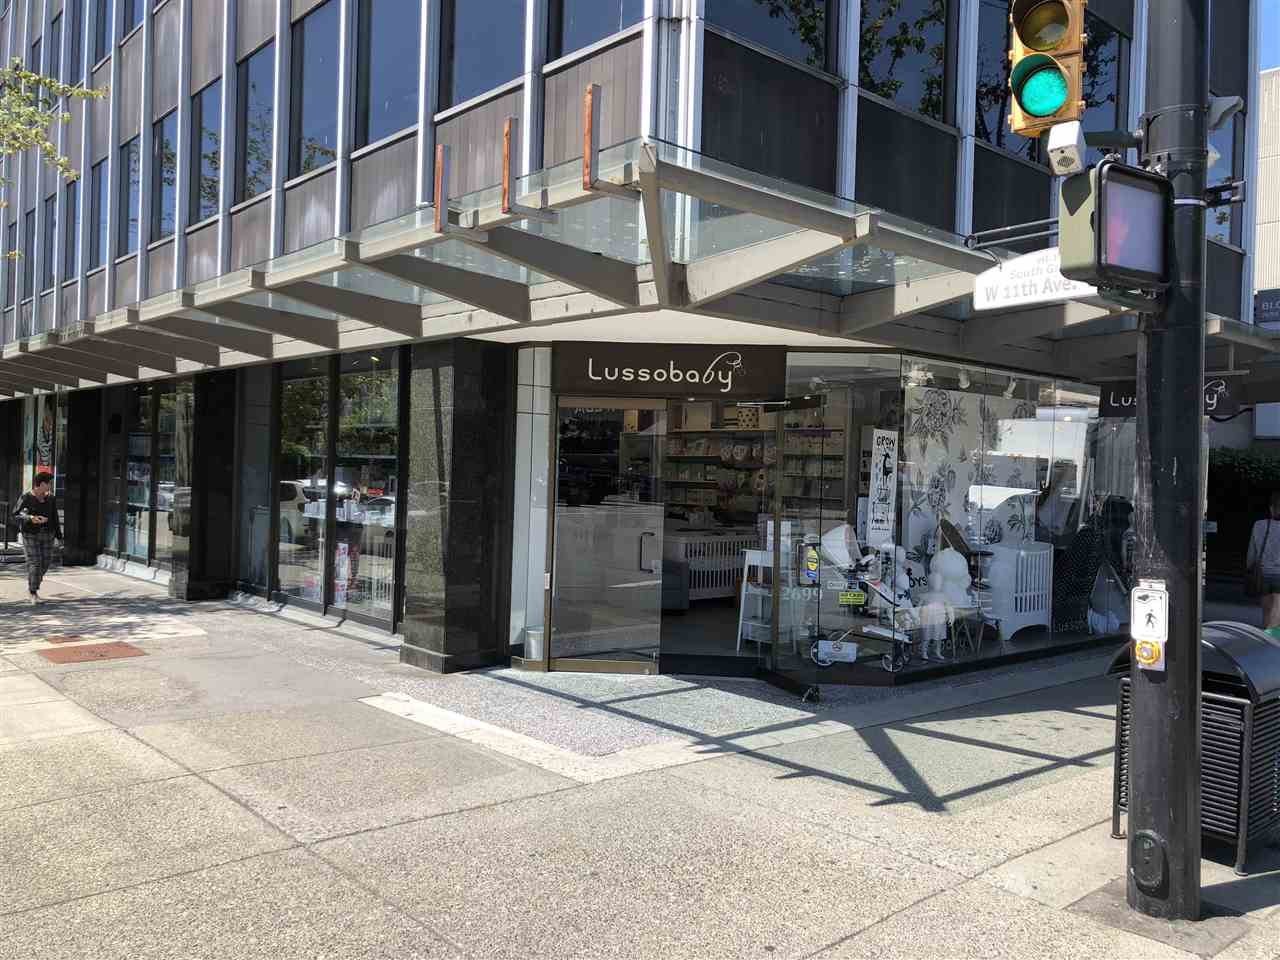 3,014 SF CORNER retail for lease at Granville Street and West 11th Avenue. This is a premier retail location in the heart of South Granville. The space is in excellent condition & a long lease without demolition clause is available. Possession is scheduled for January 1, 2019.